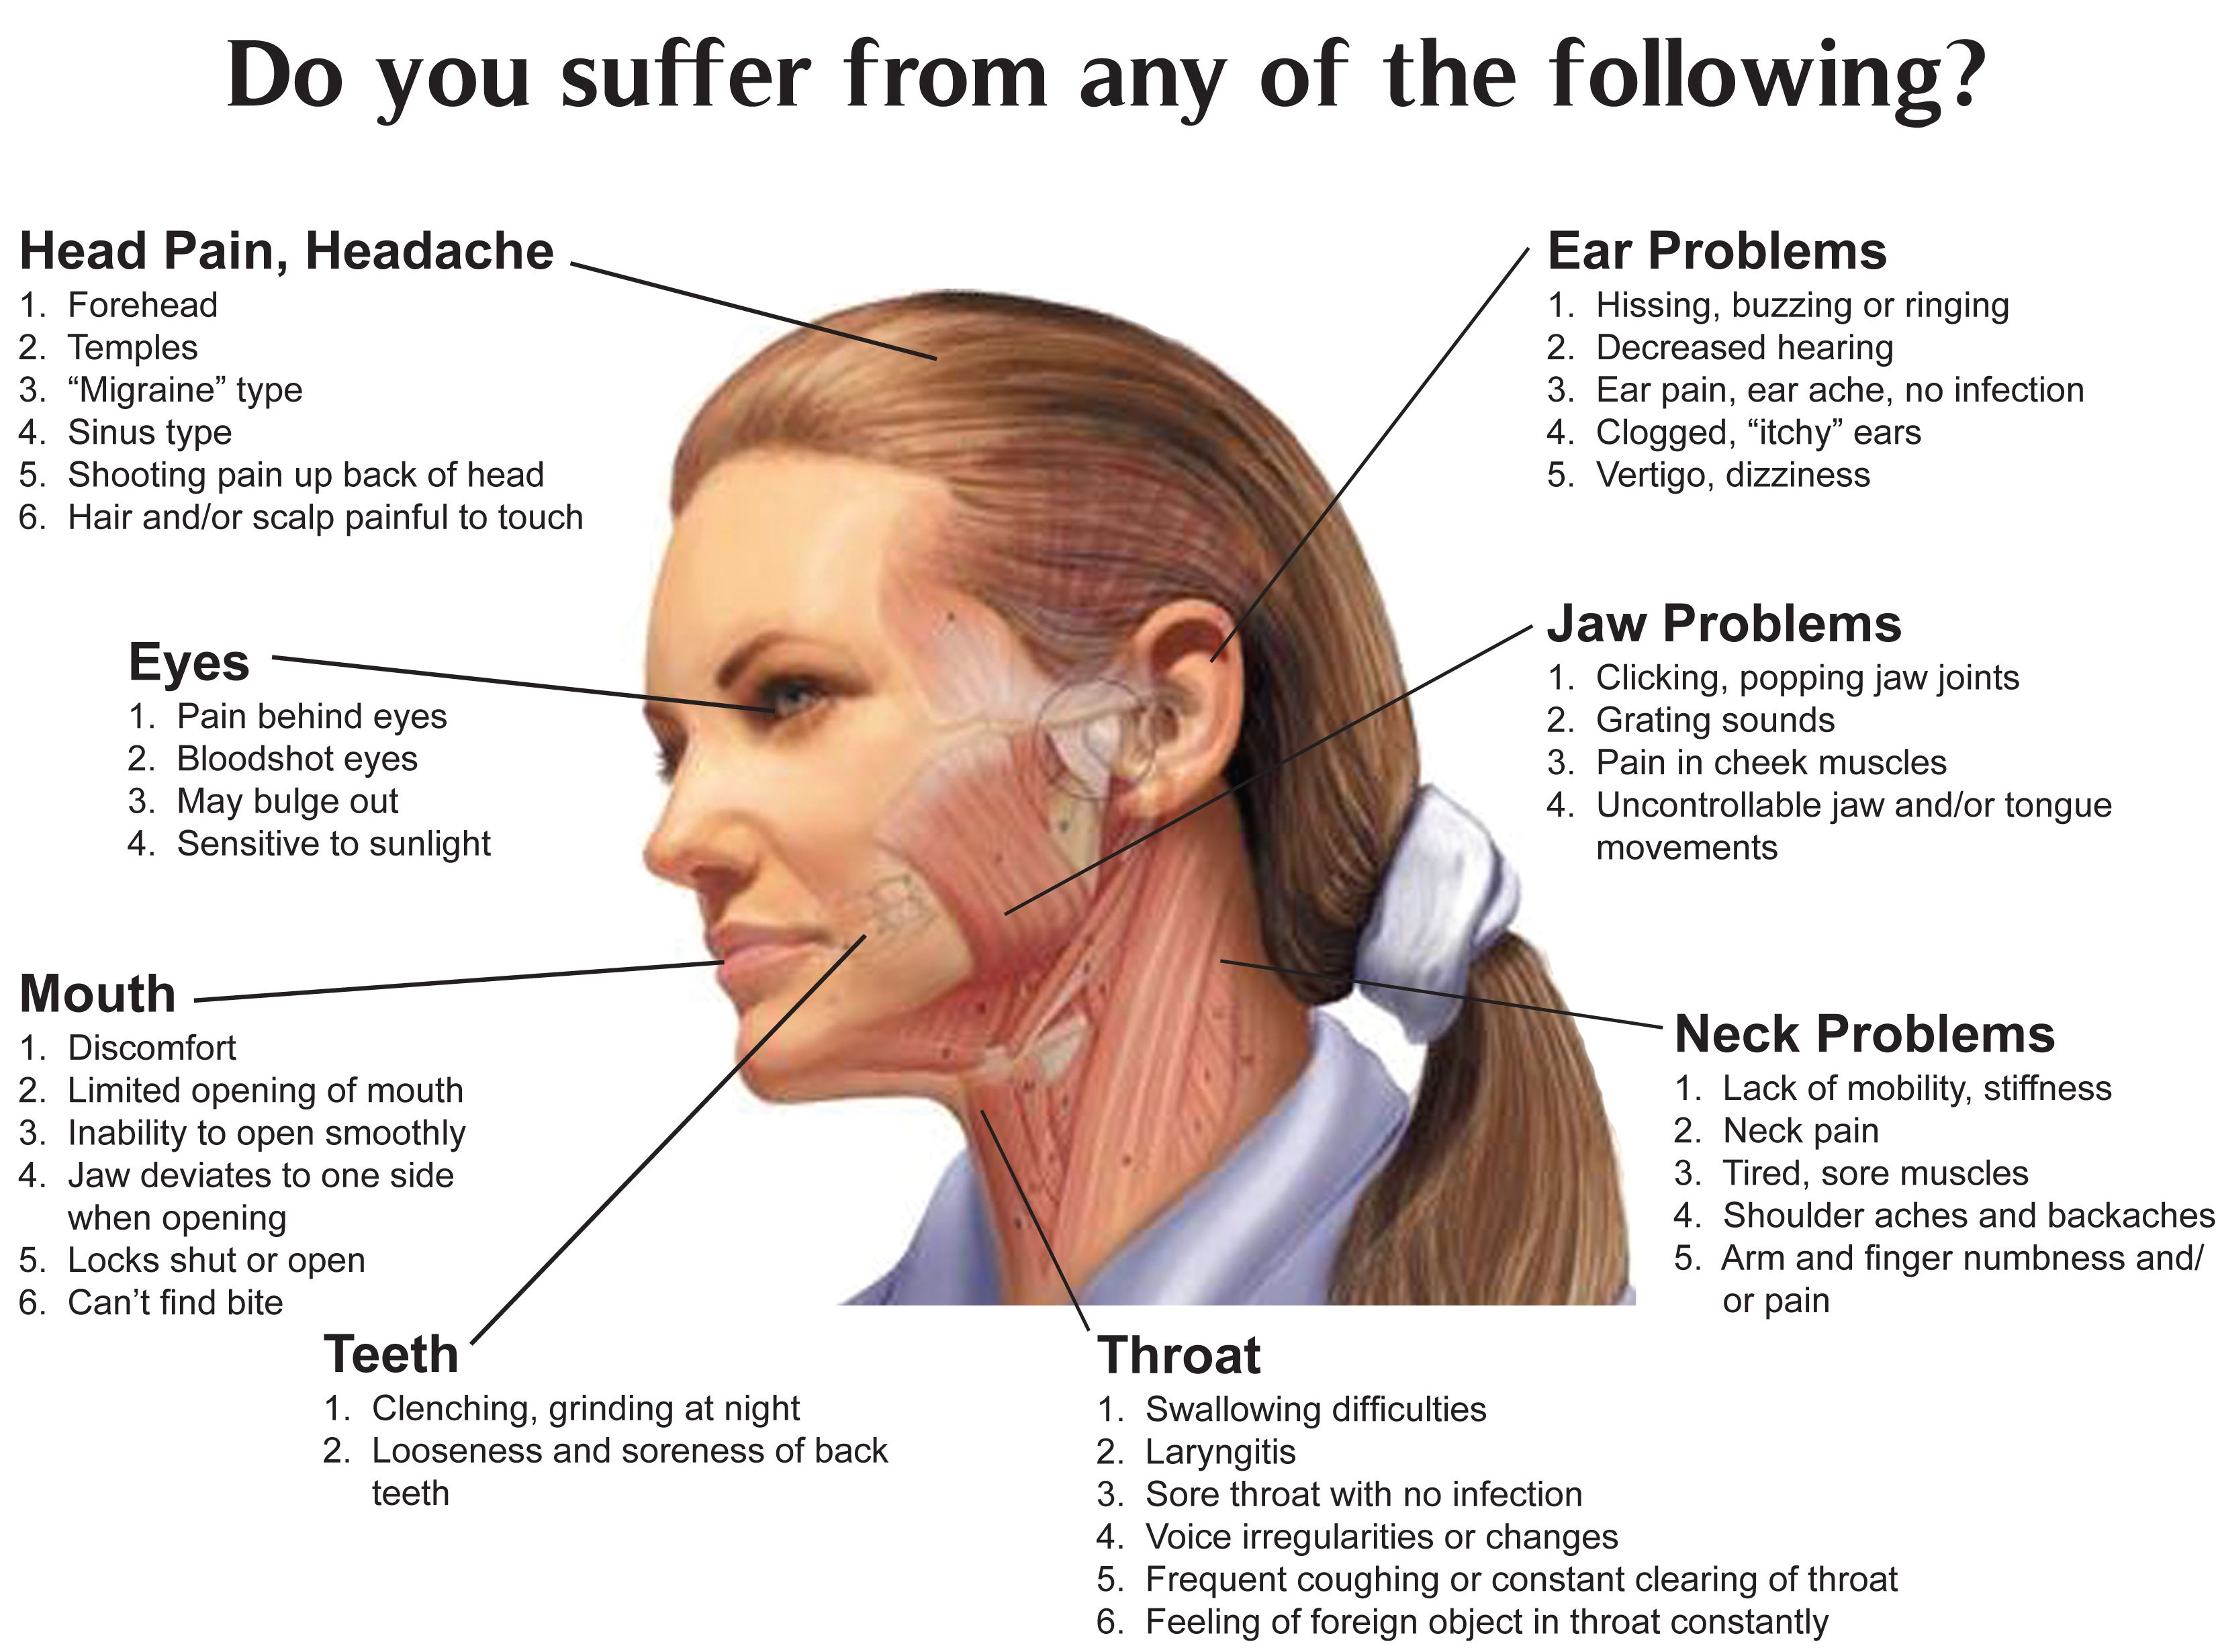 How To Get Rid Of Earache And Jaw Pain